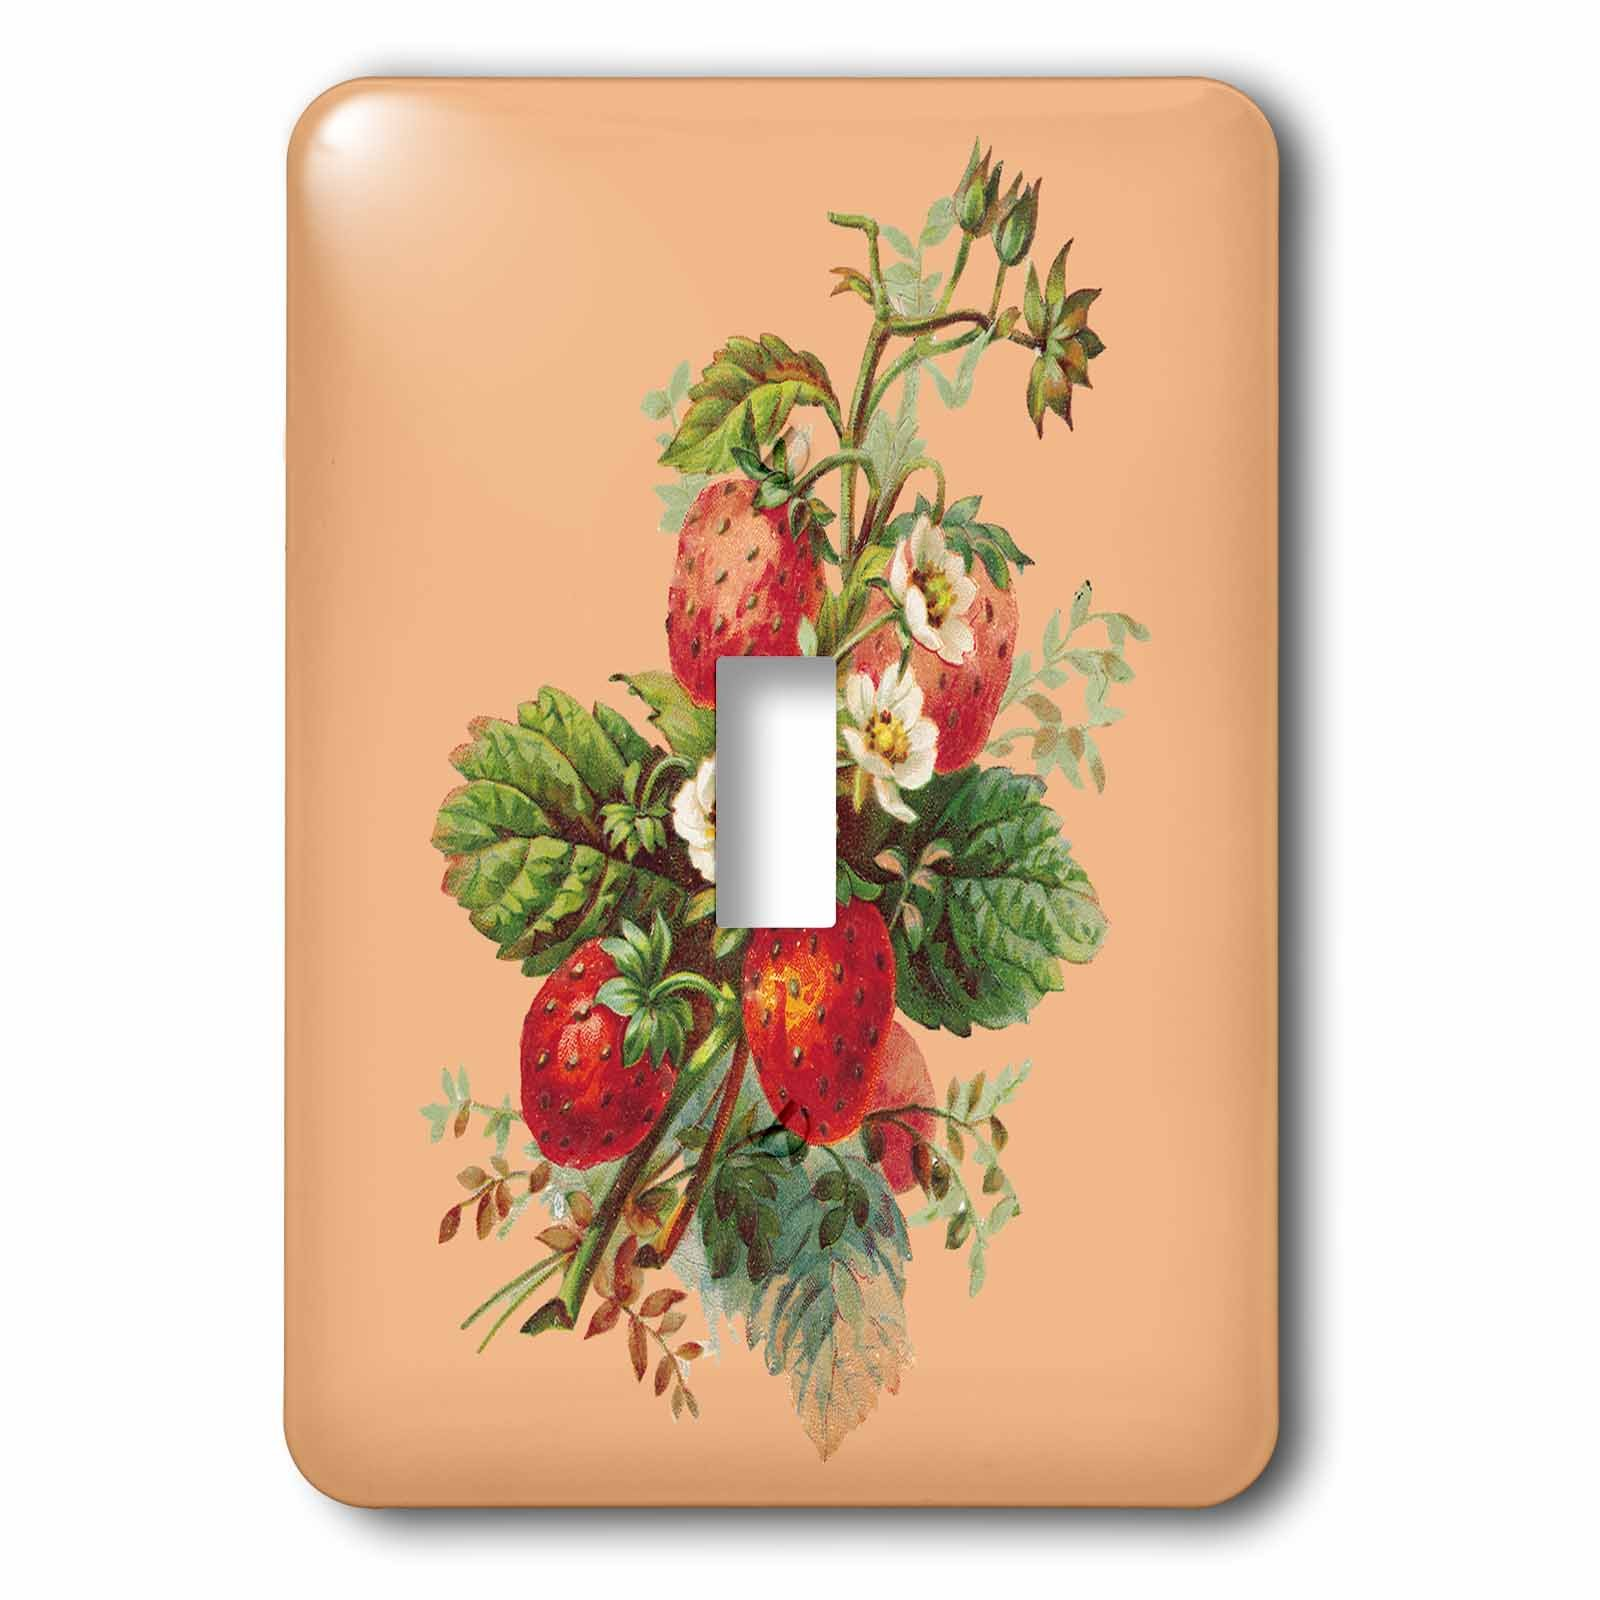 3dRose lsp_170330_1 Strawberry Plant with Fruits and White Flowers Light Switch Cover